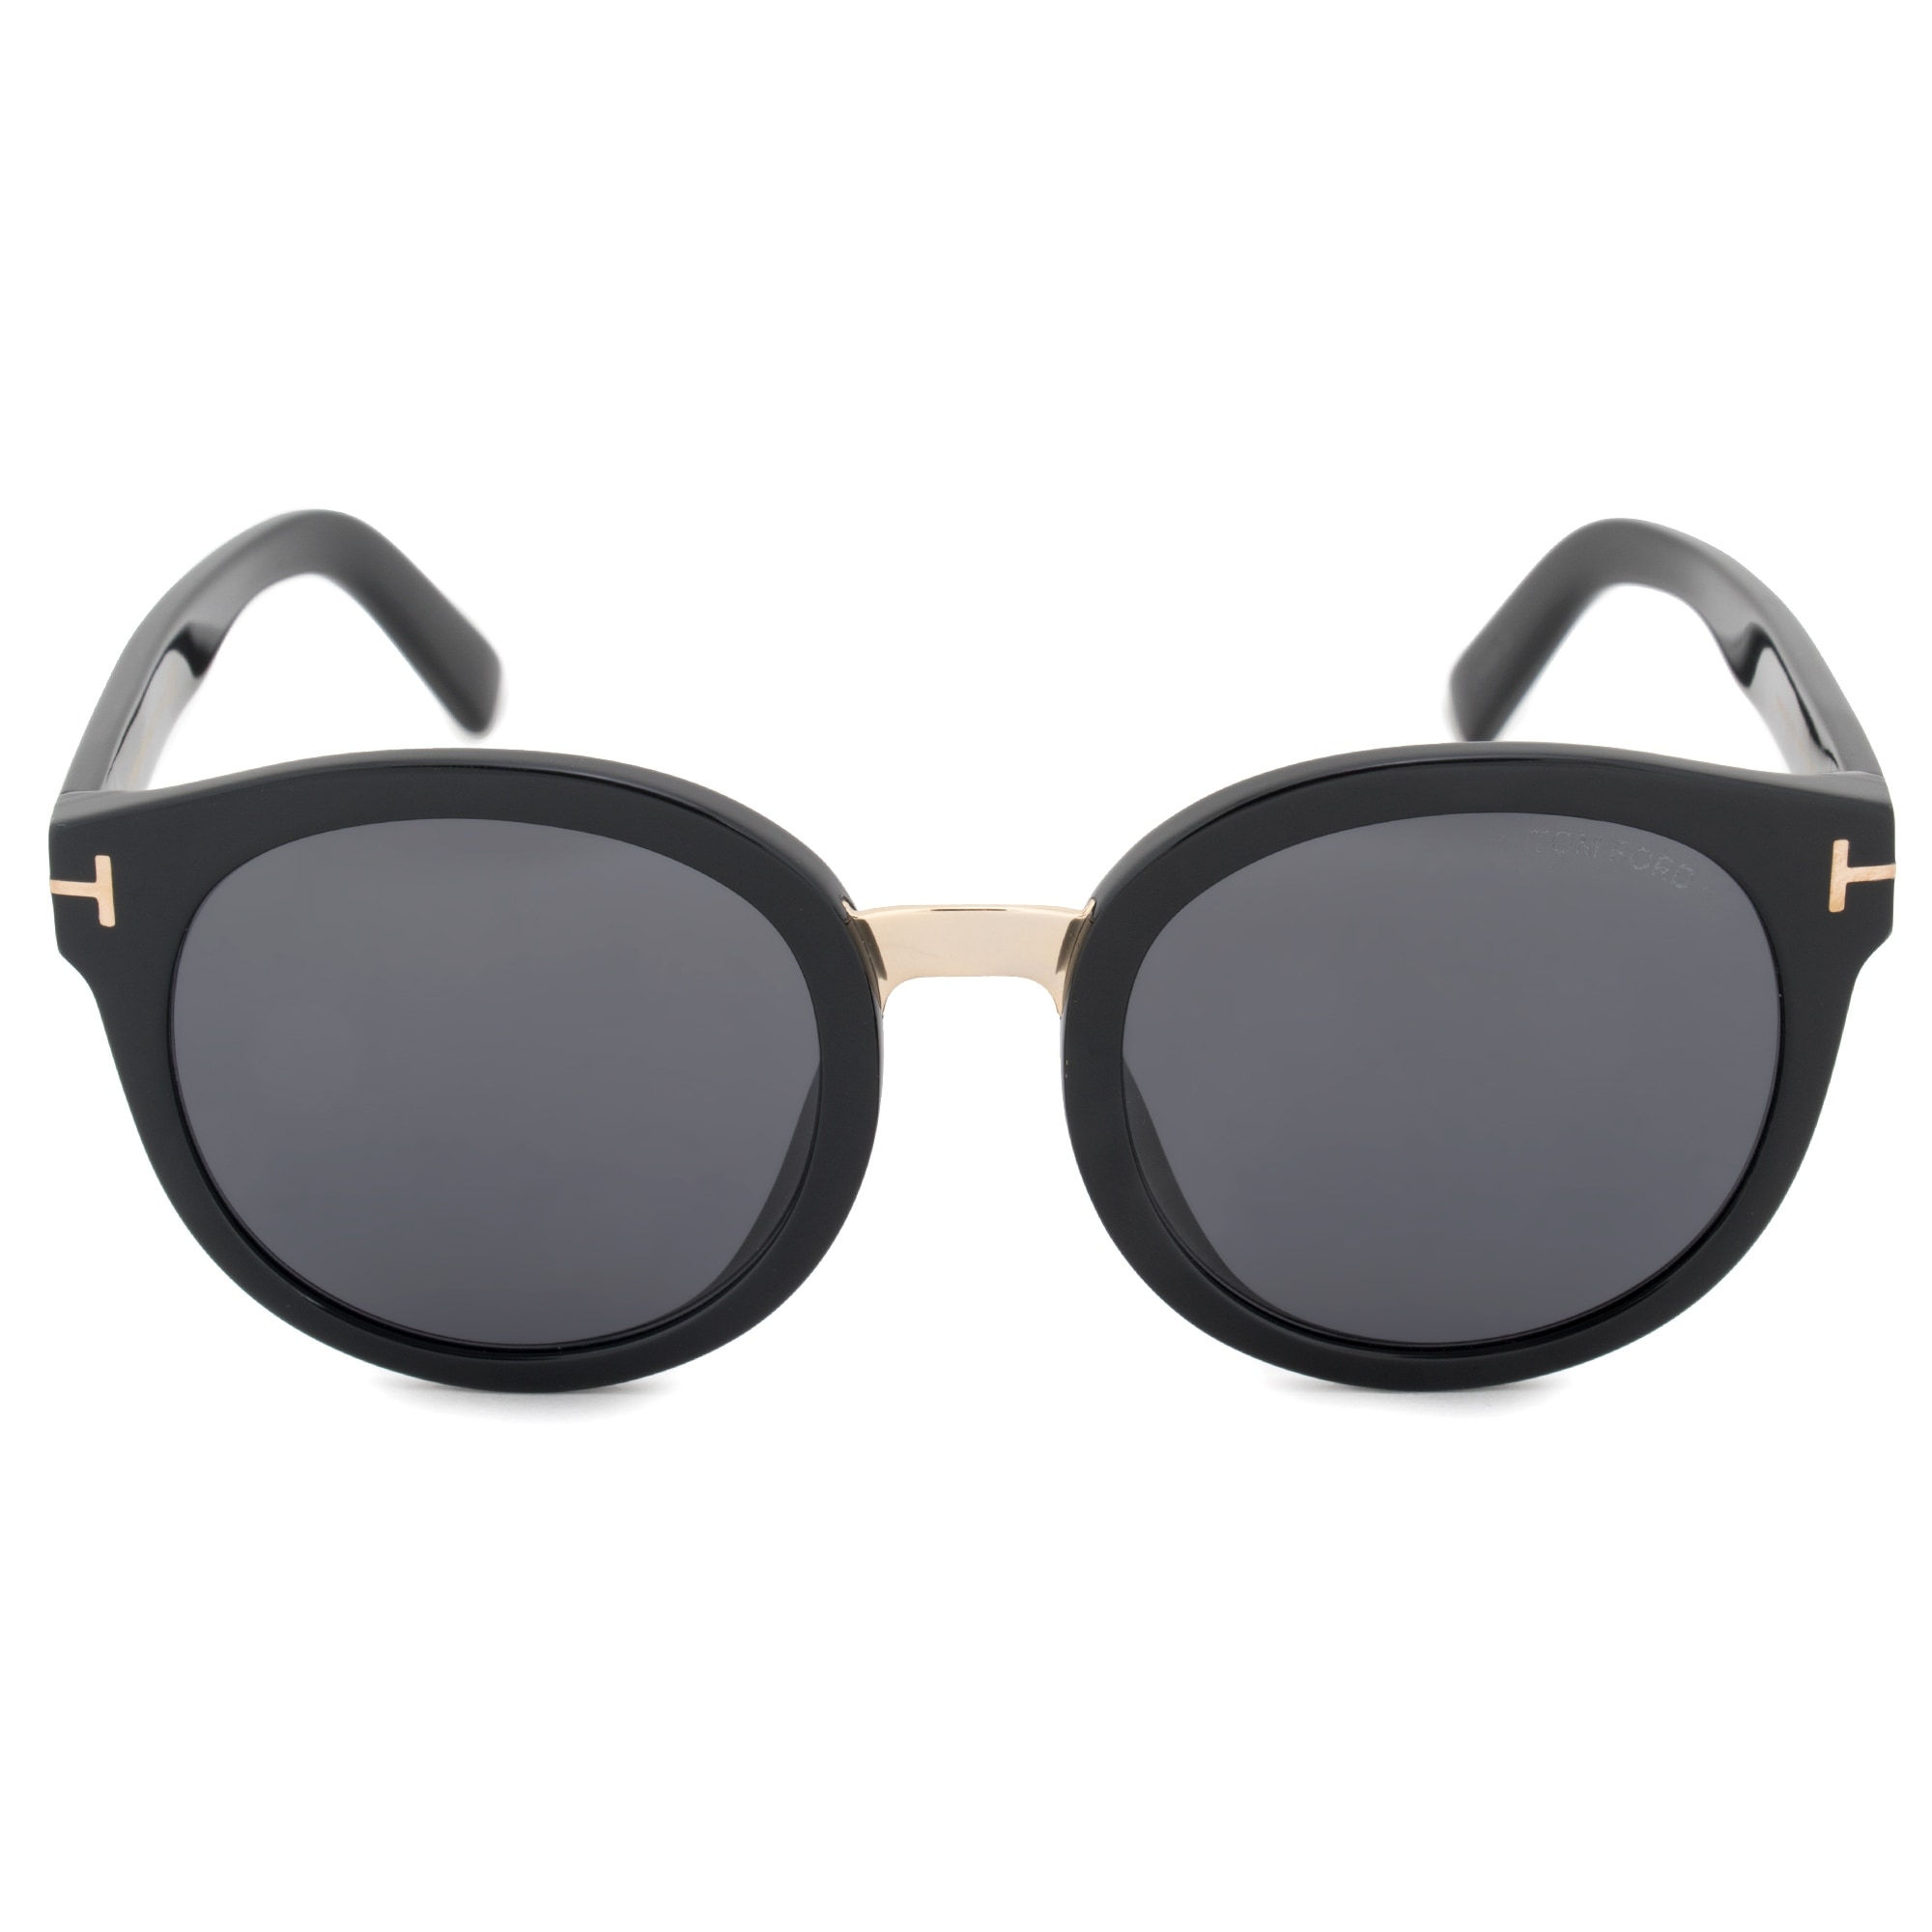 09d18817a9a Image Unavailable Source · Shop Tom Ford Round Sunglasses FT0478 01A 54  Free Shipping Today